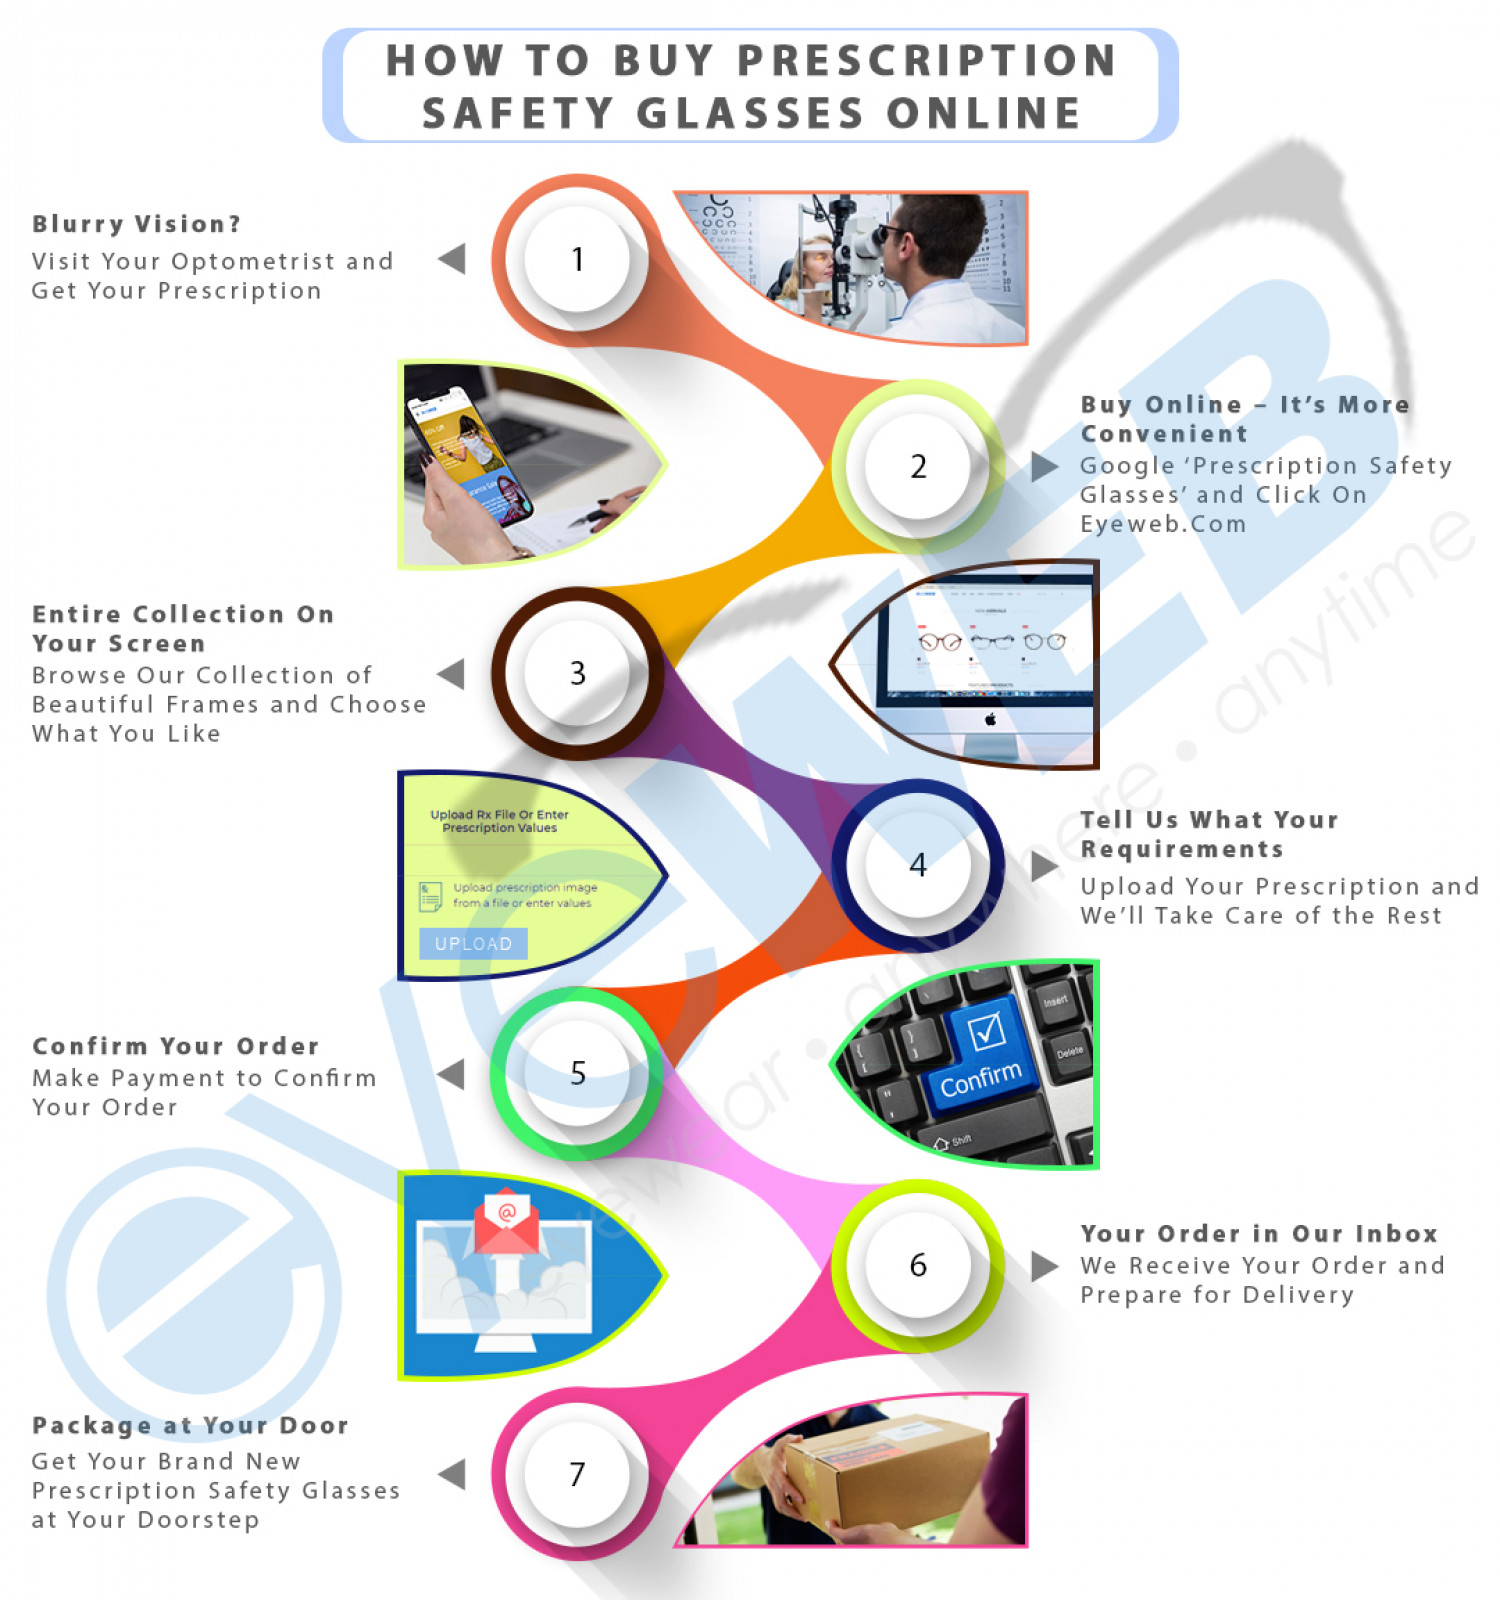 How to Buy Prescription Safety Glasses Online Infographic